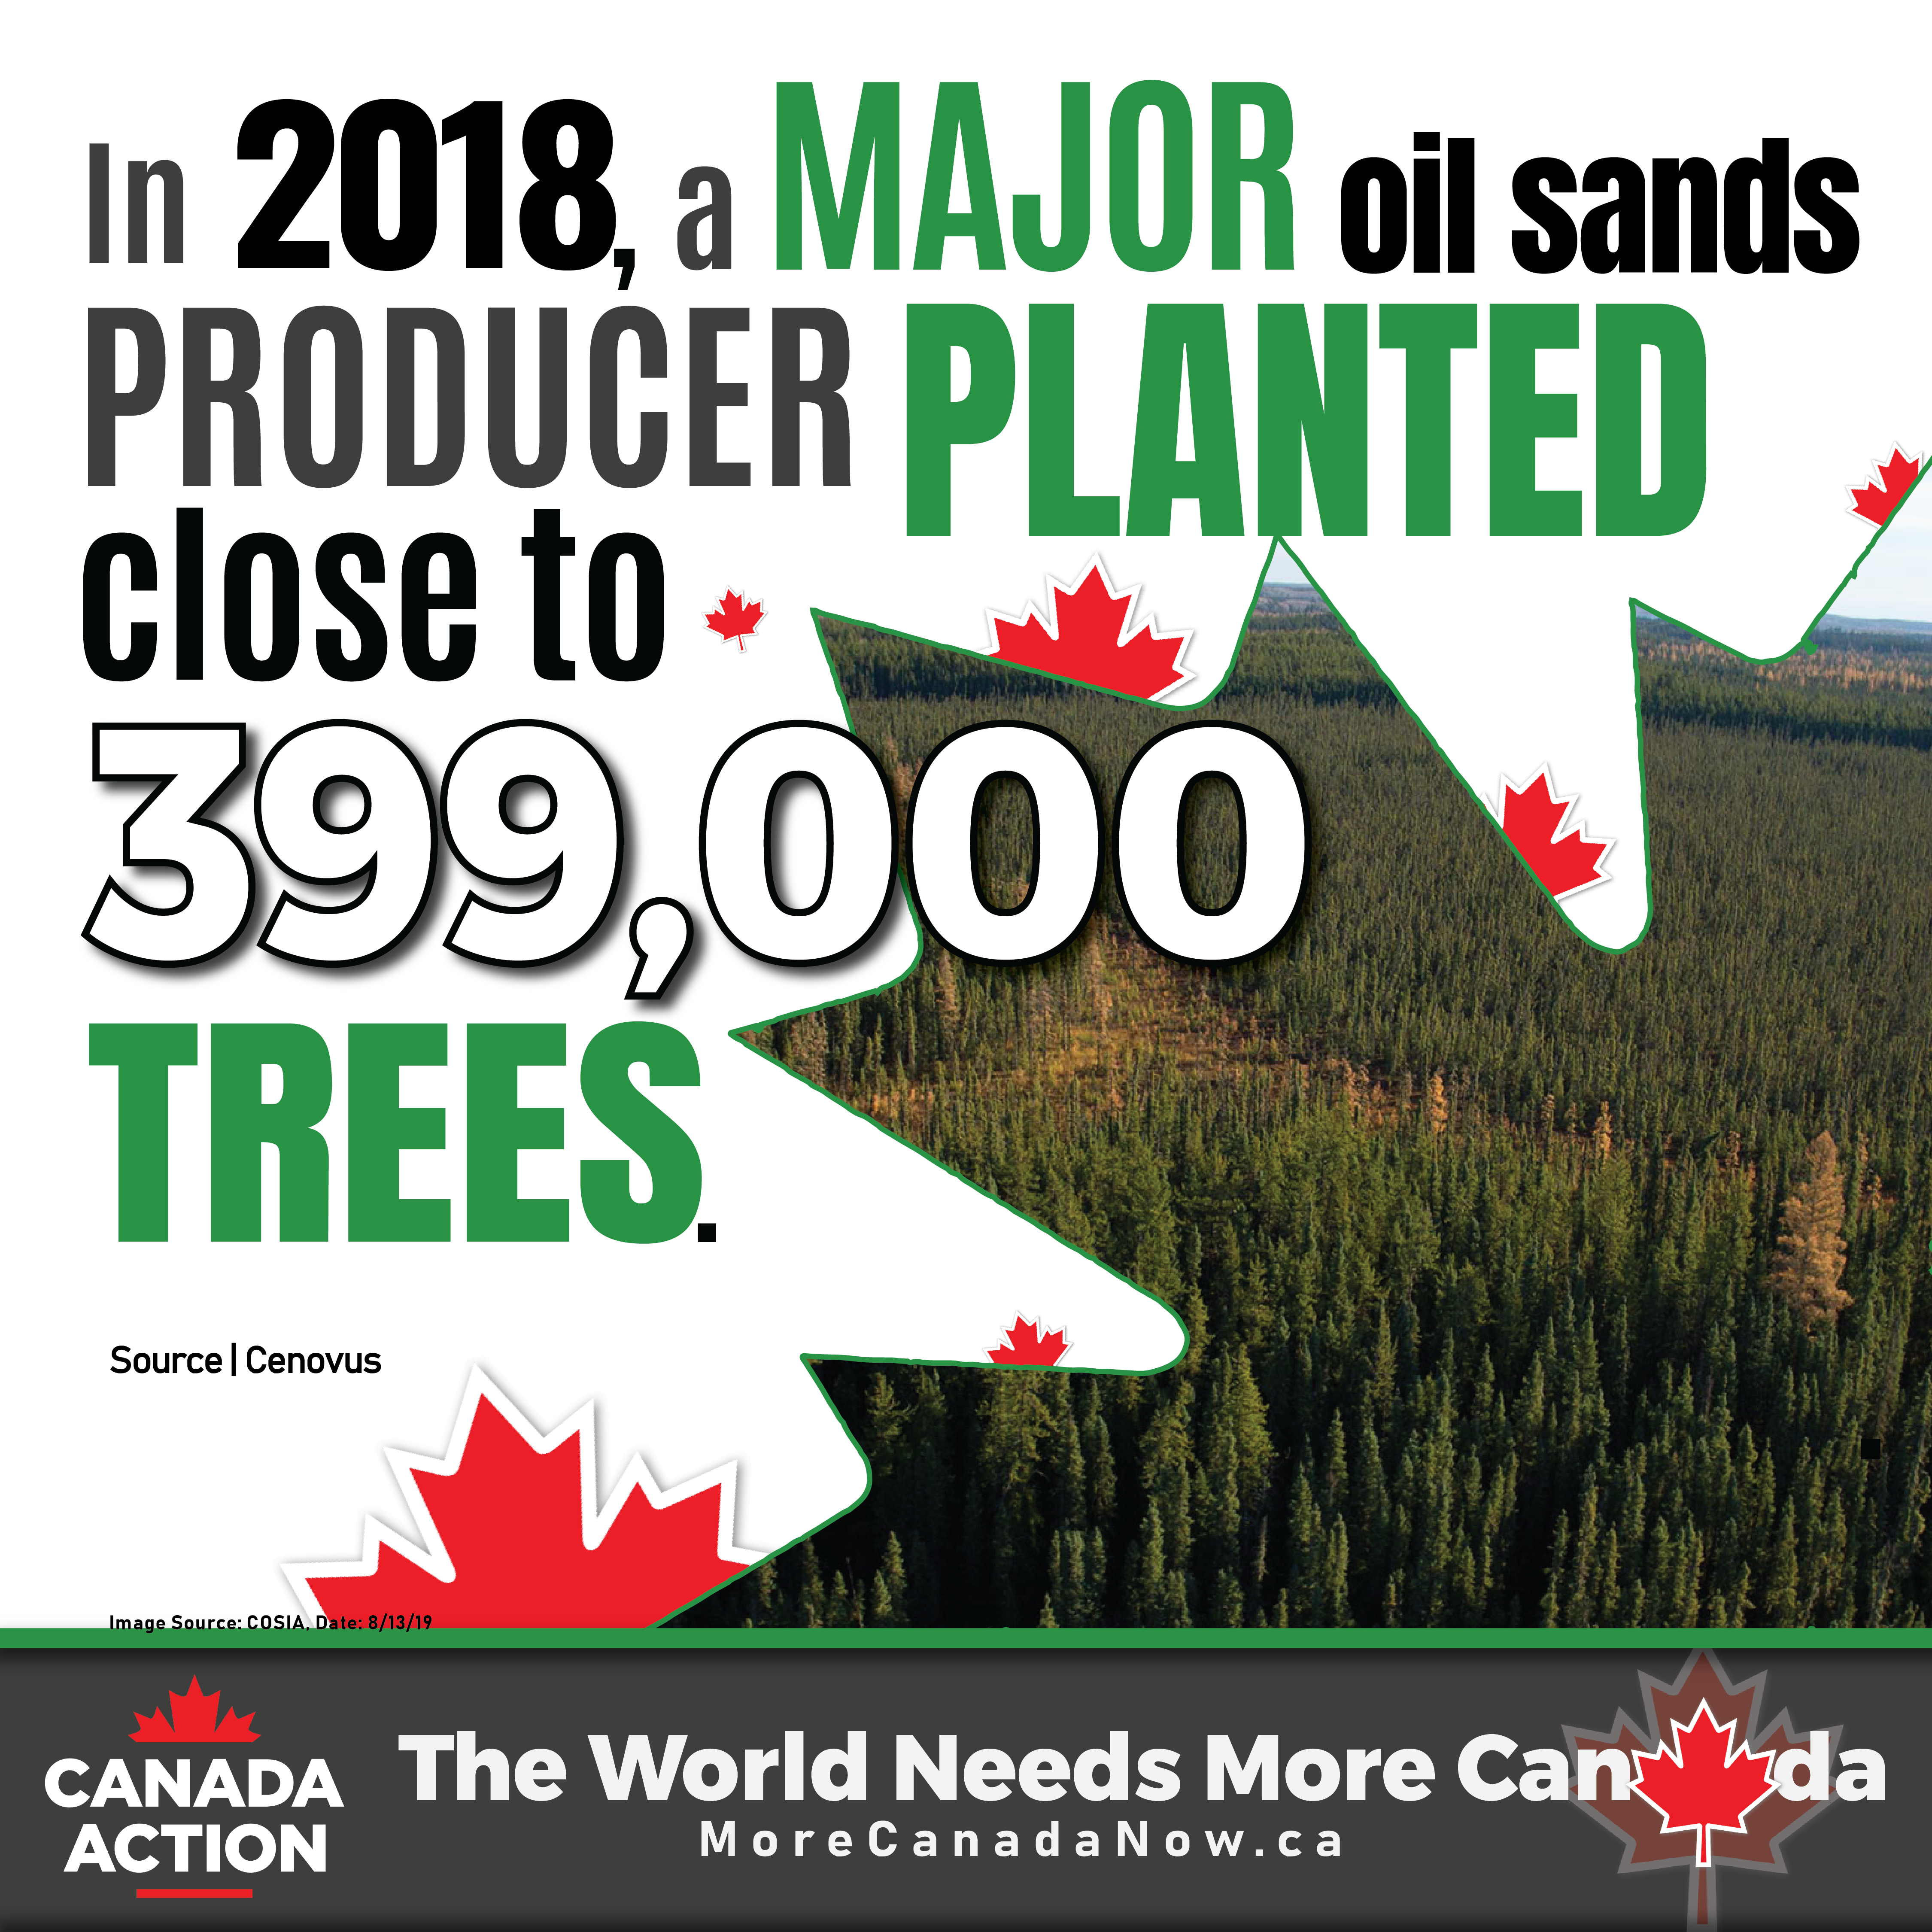 In 2018, a major oilsands producer planted nearly 400,000 trees